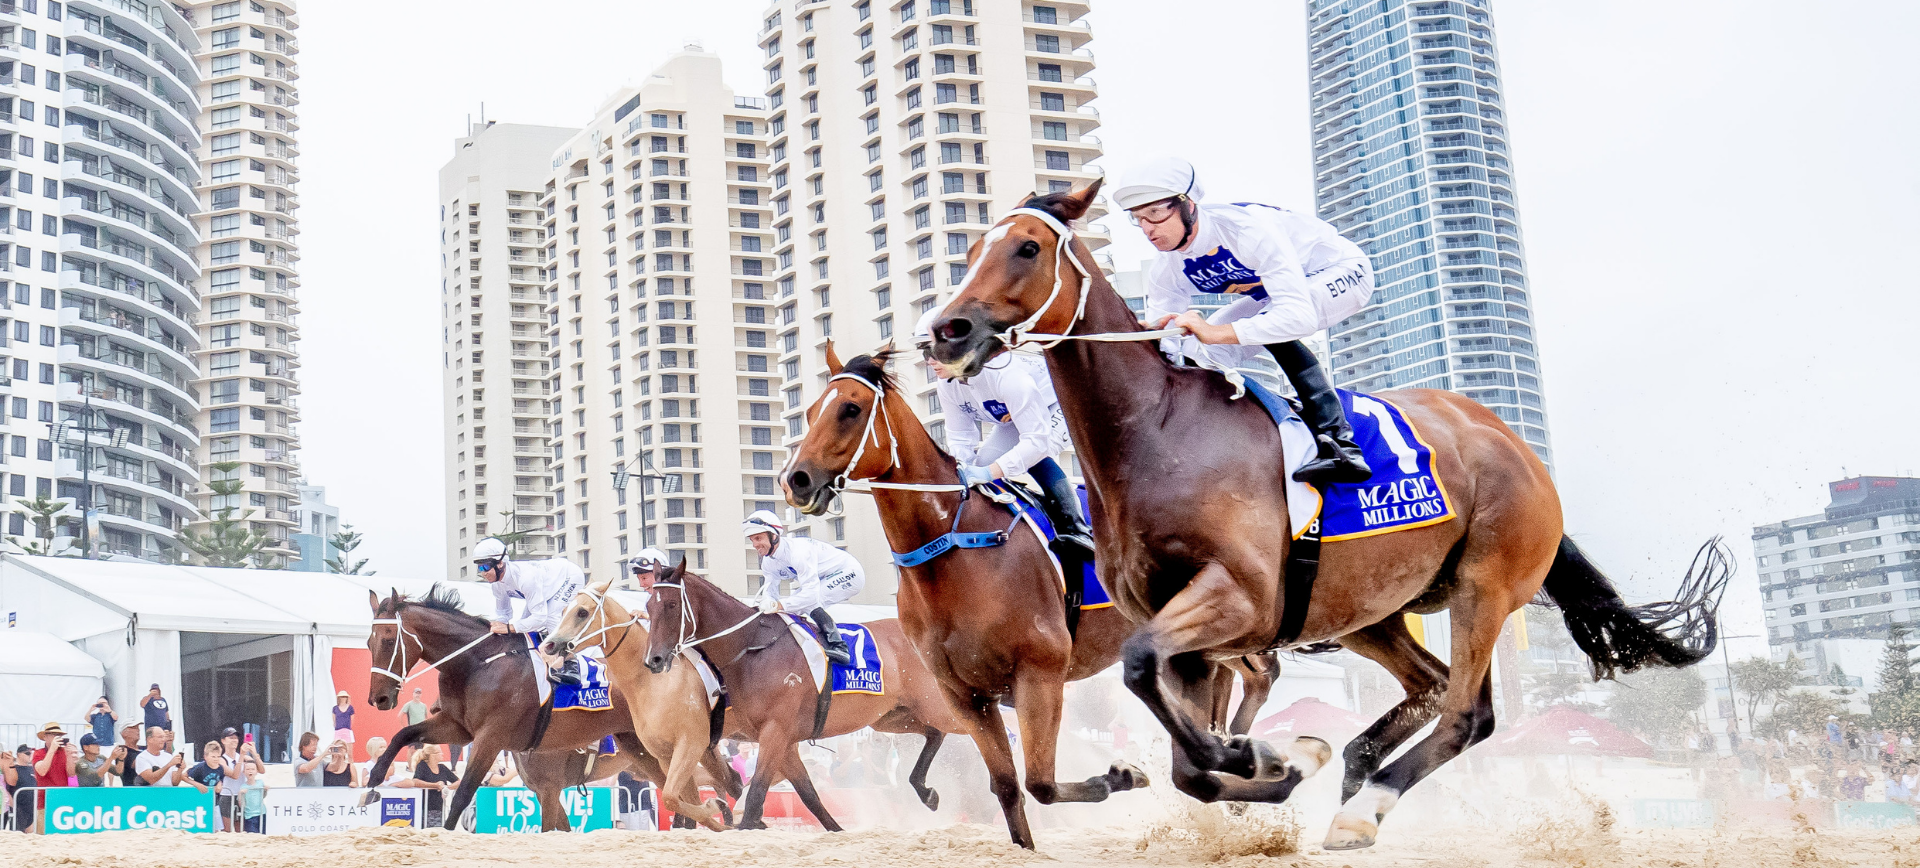 The Star Gold Coast Magic Millions Barrier Draw and Beach Run